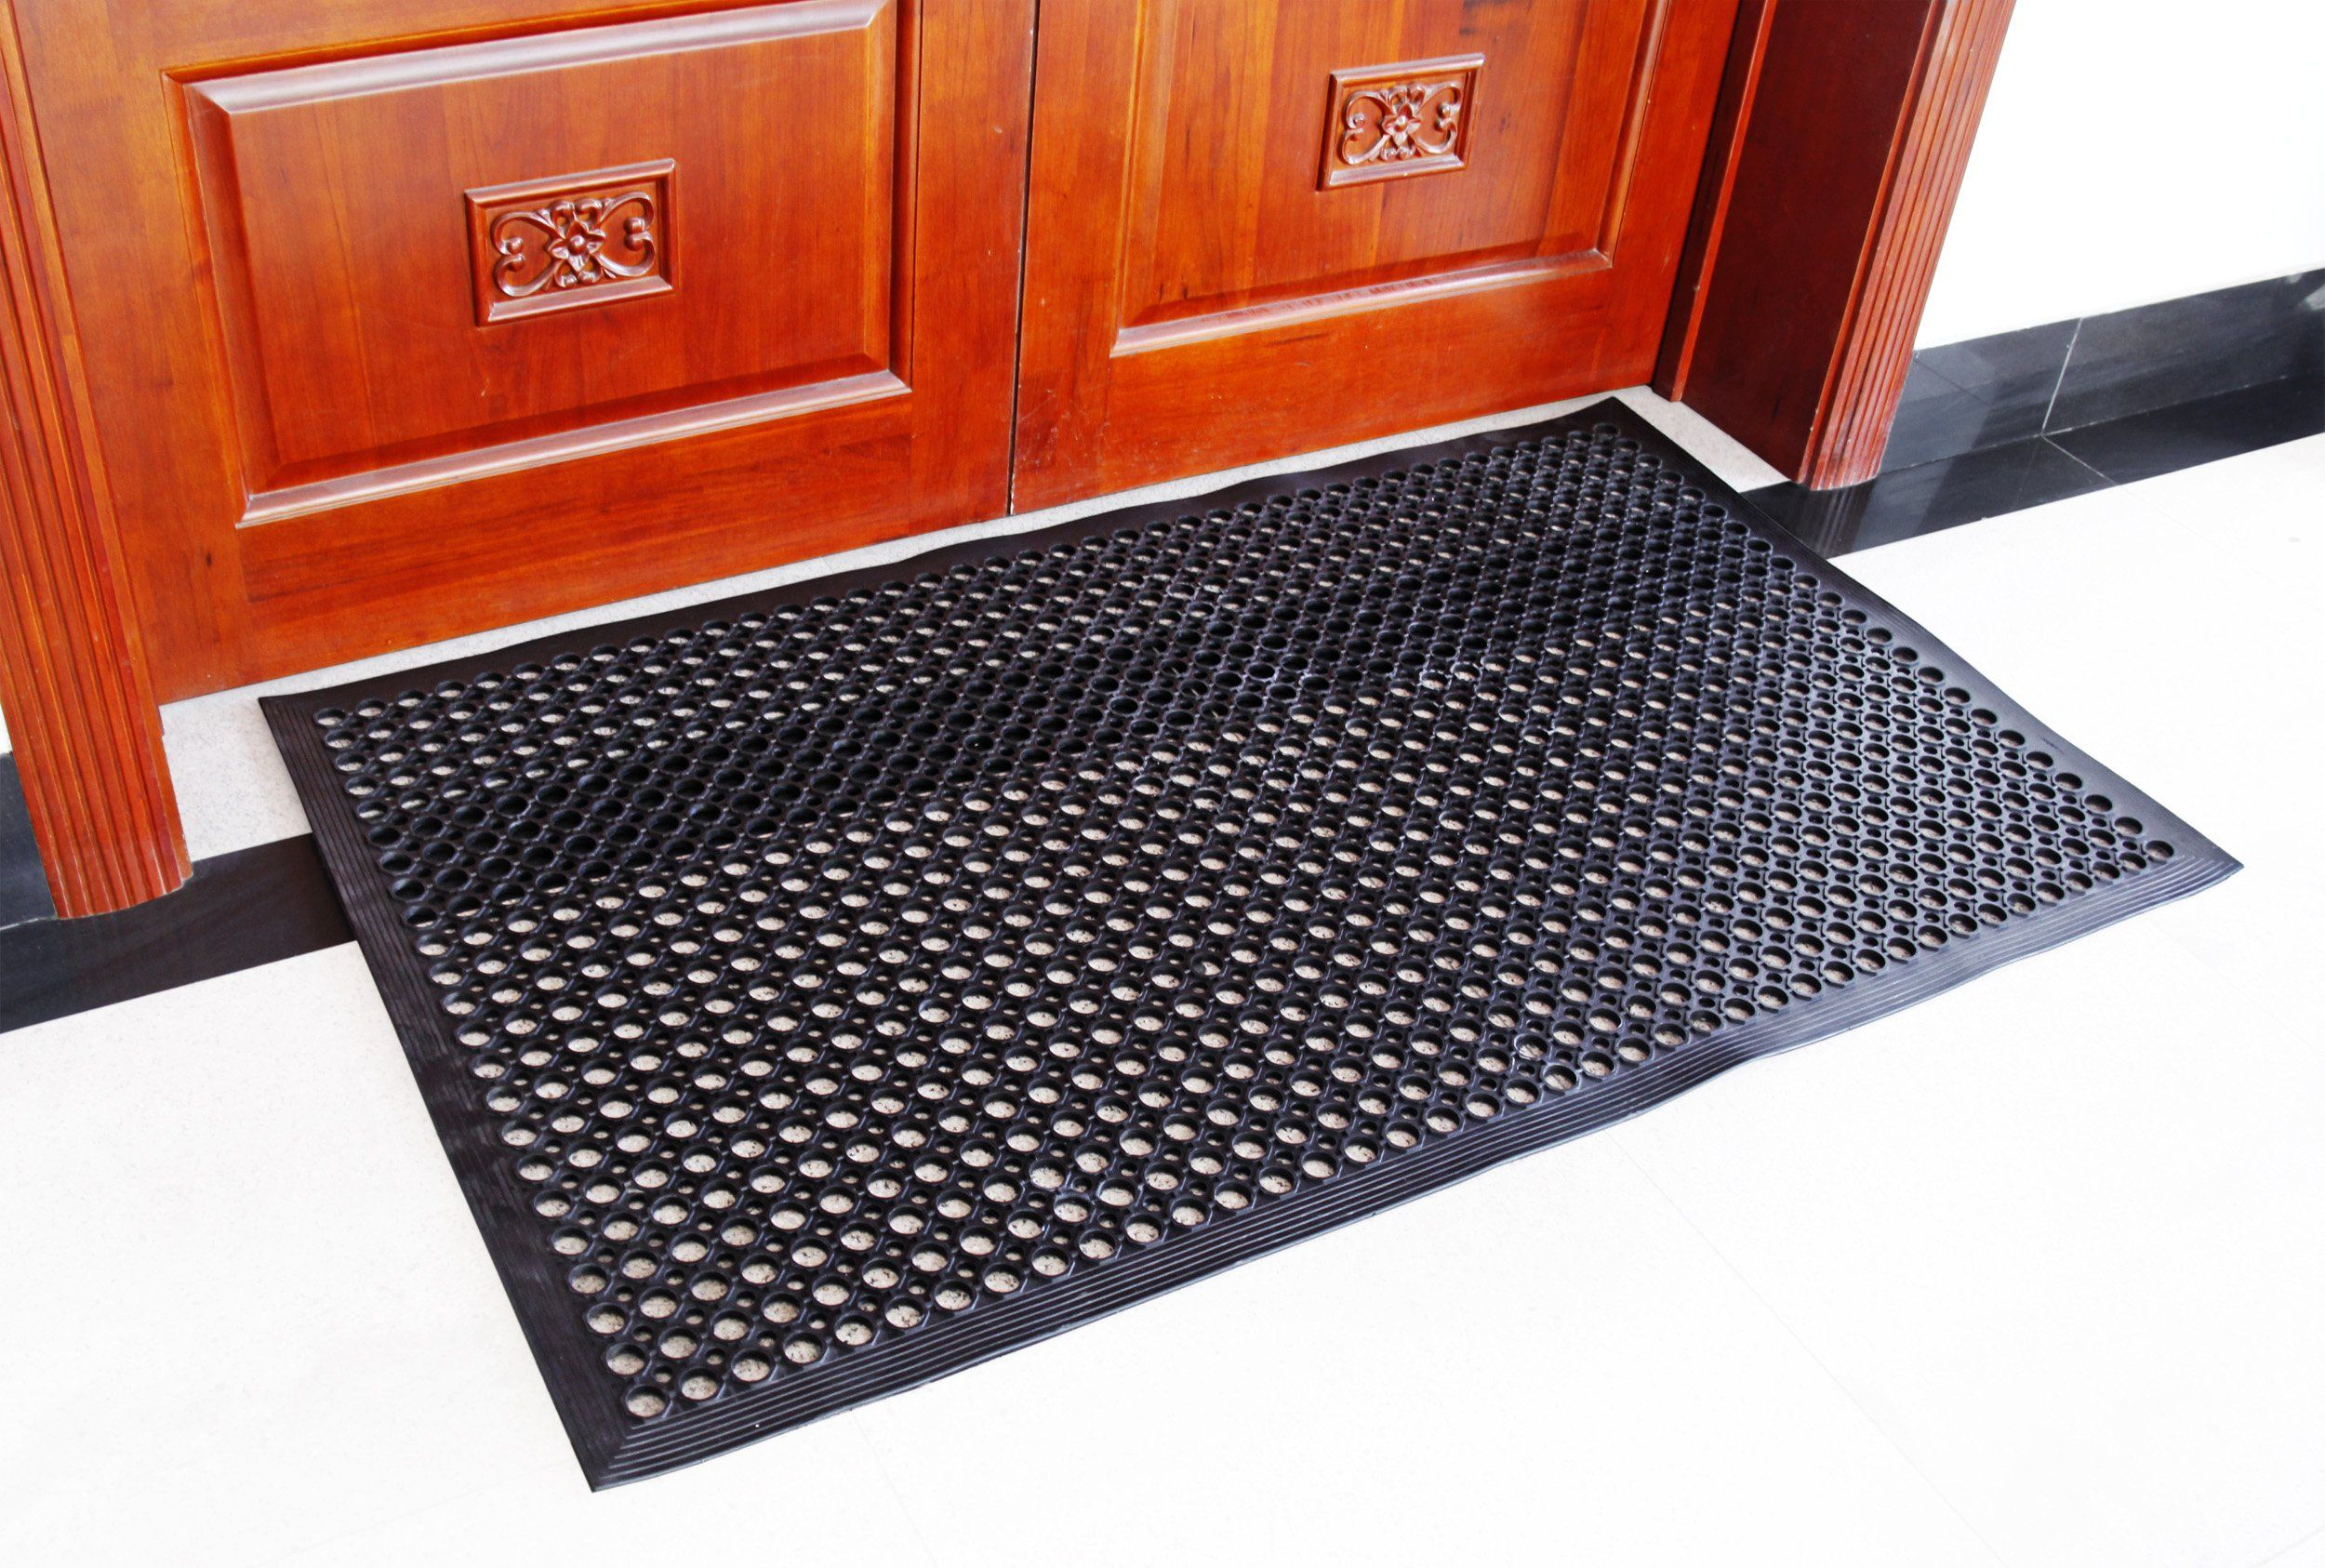 New Star 1 Pc Heavy Duty Black 36x60 Inch Restaurant Bar Anti Fatigue Rubber Floor Mat Ad Black Affiliate Duty Rubber Floor Mats Floor Mats New Star